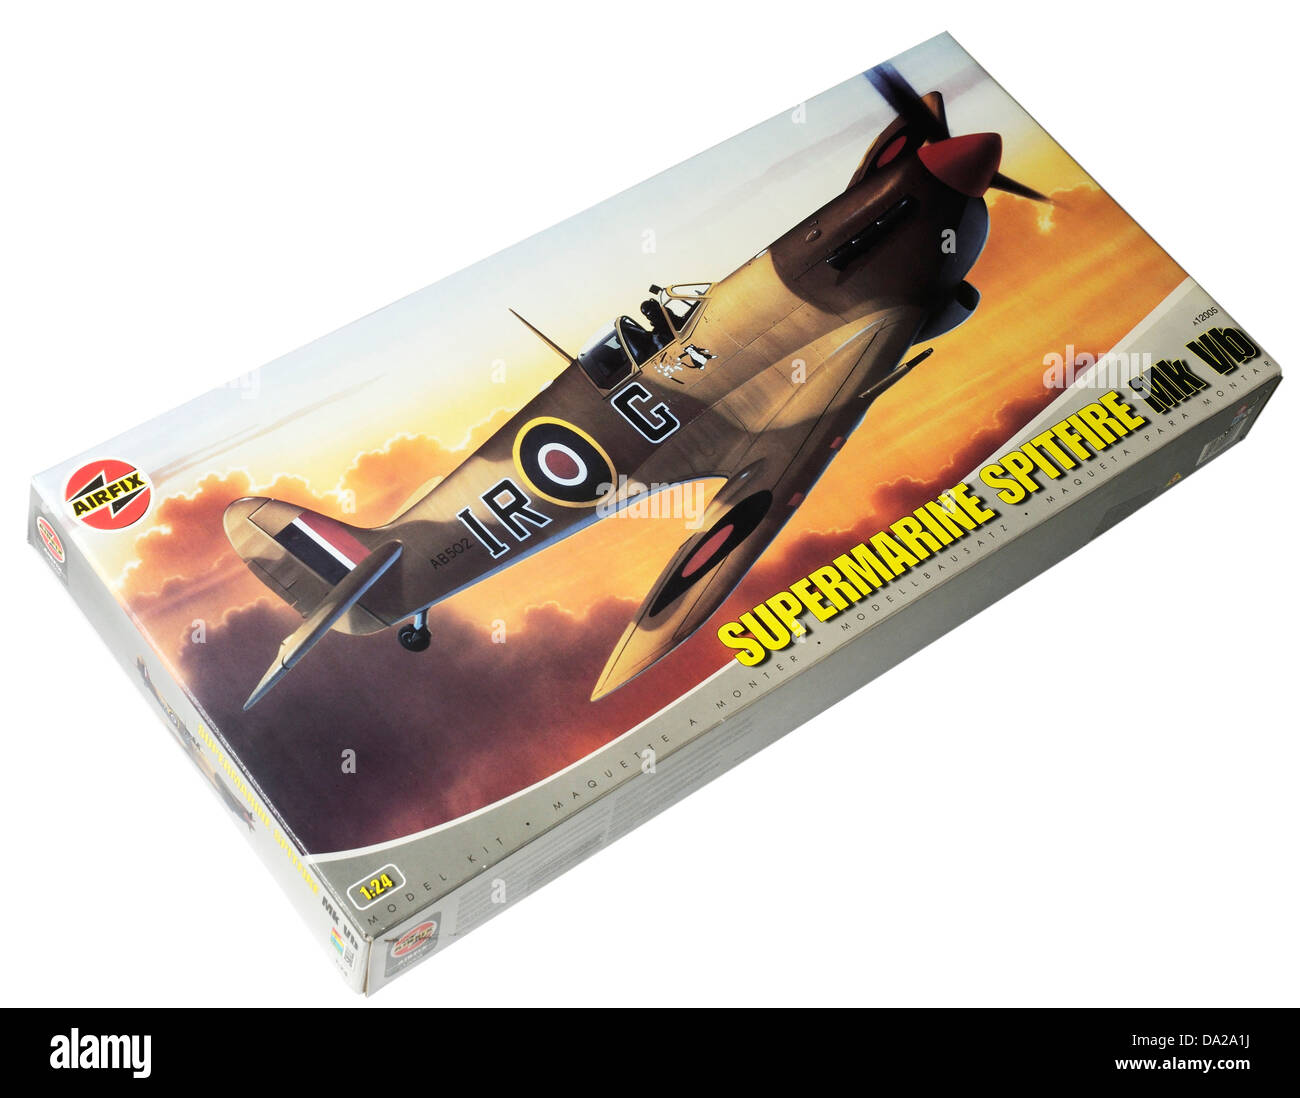 An Airfix model Spitfire in 1/24 scale - Stock Image